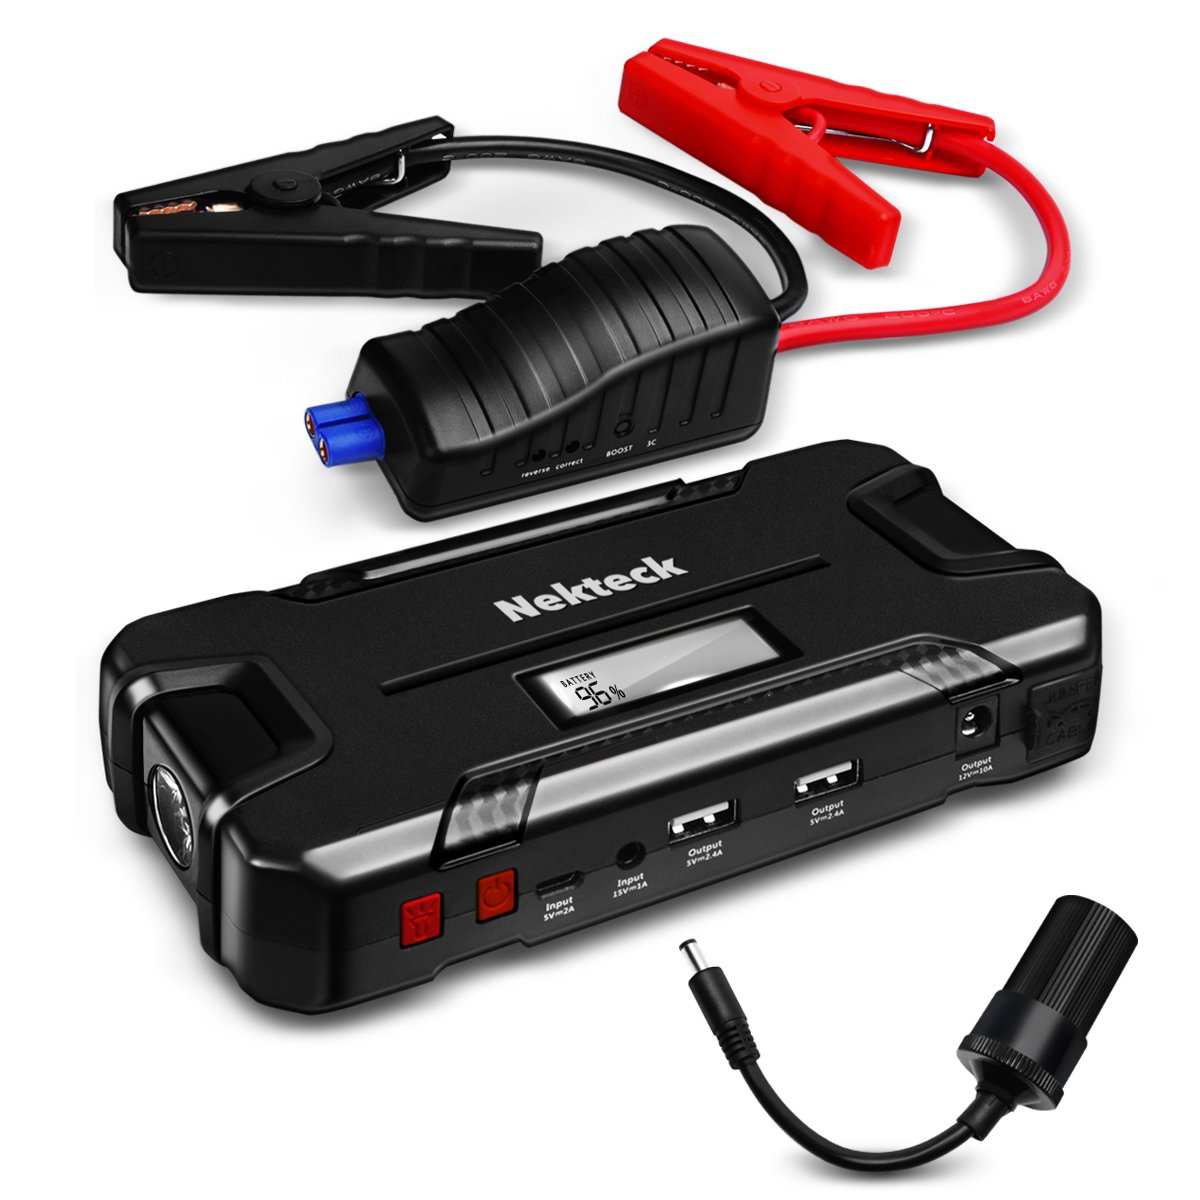 Nekteck Car Jump Starter Portable External Battery Charger 500A Peak With 12000mAh – Emergency